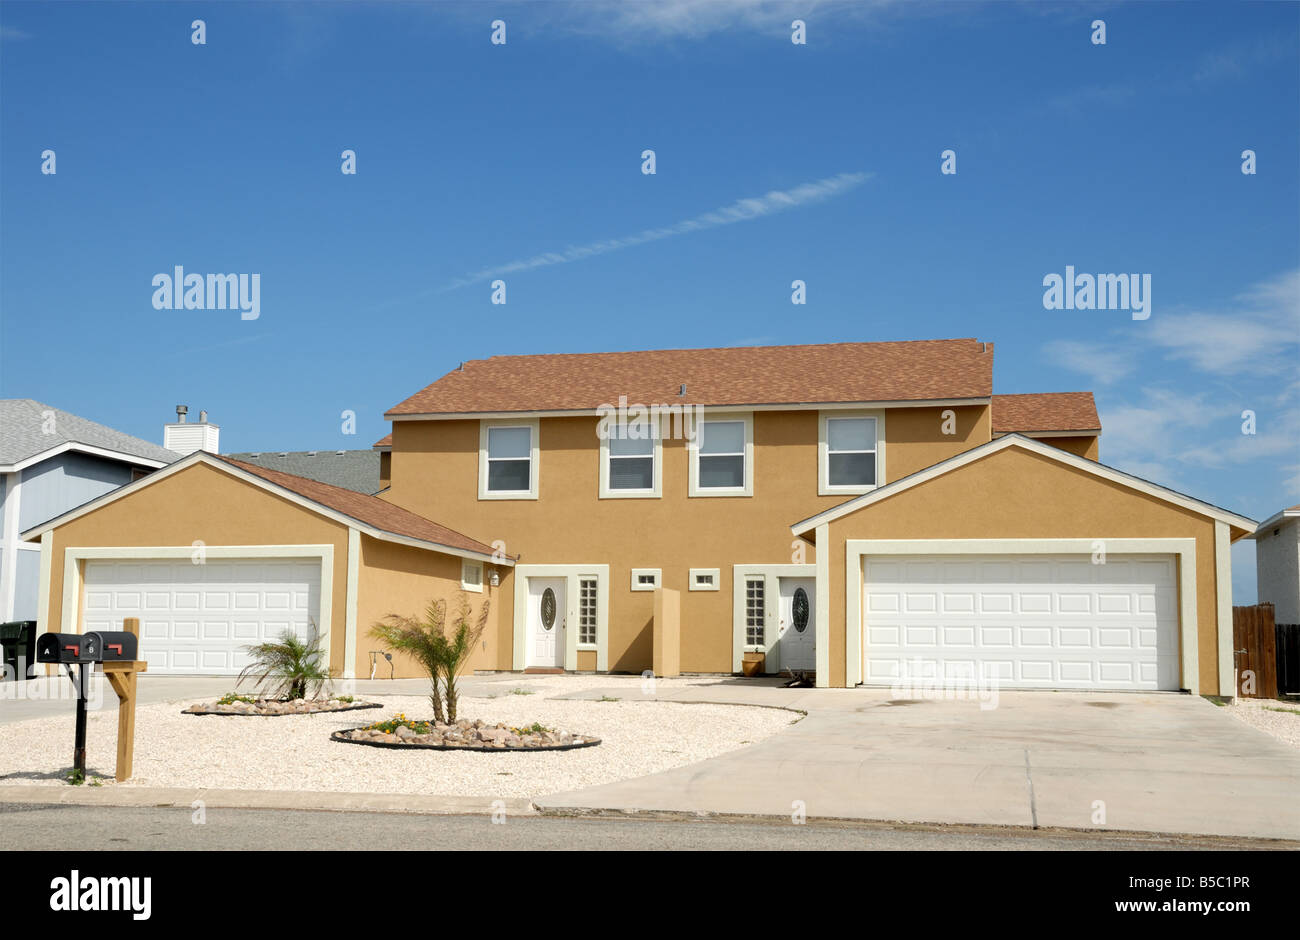 Duplex house in the United States - Stock Image